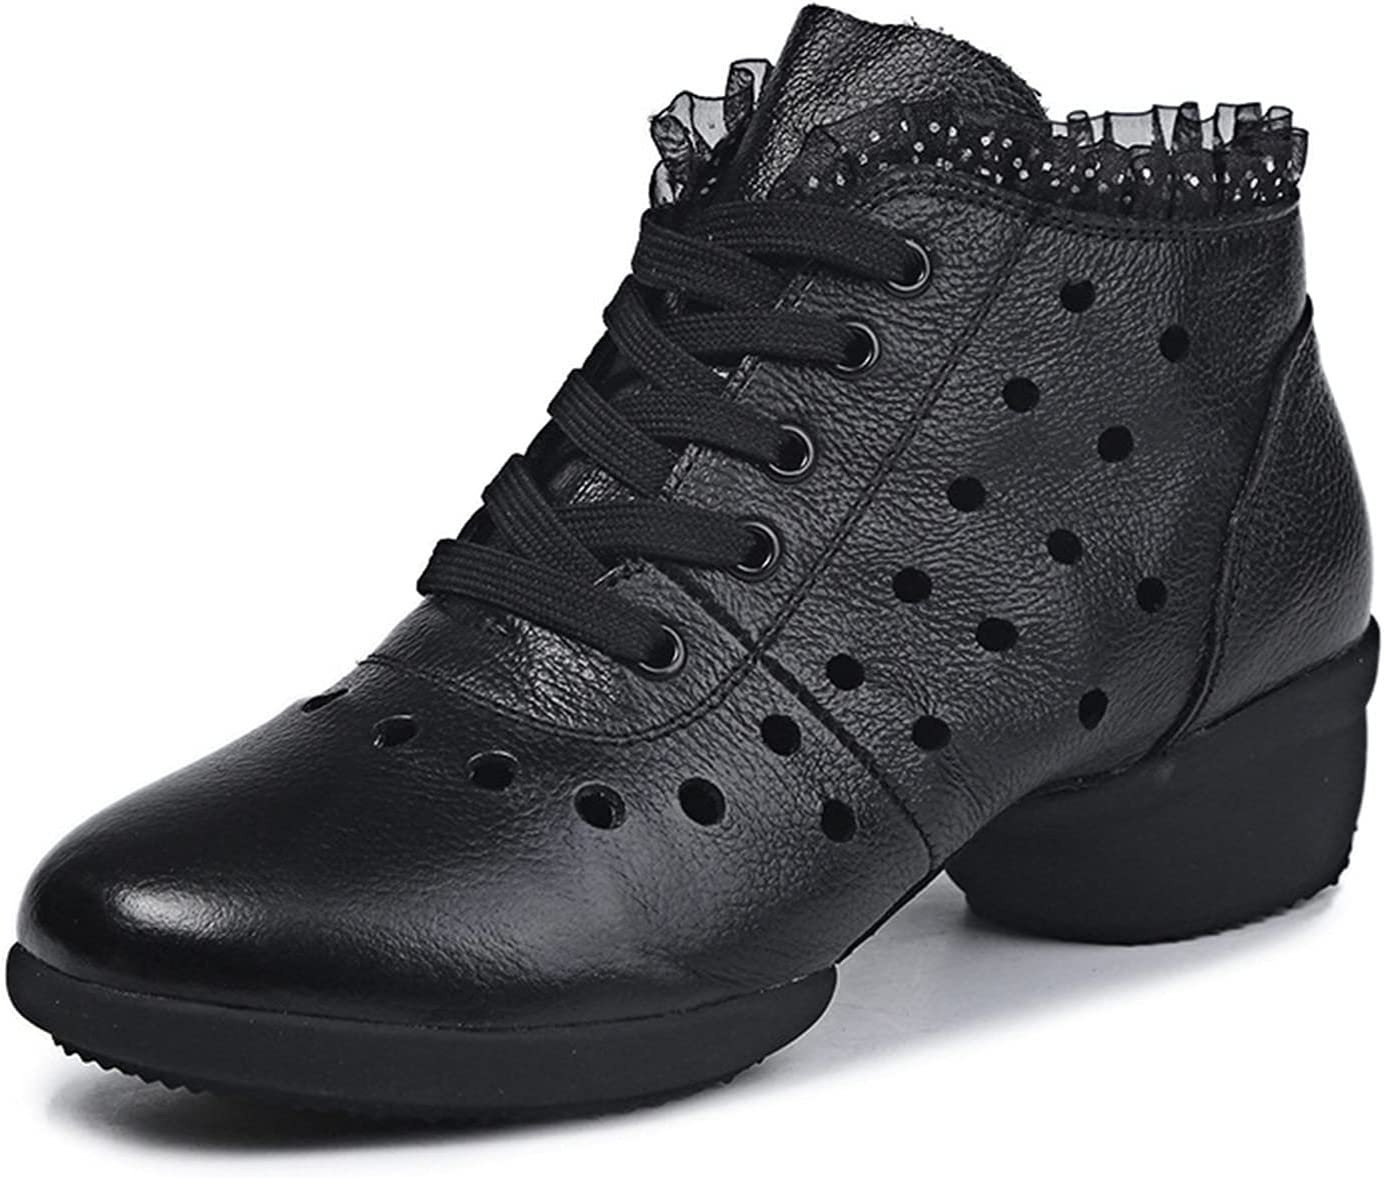 MYYU Walking Dance Shoes Jazz Shoes Sneakers Breathable Air Cush